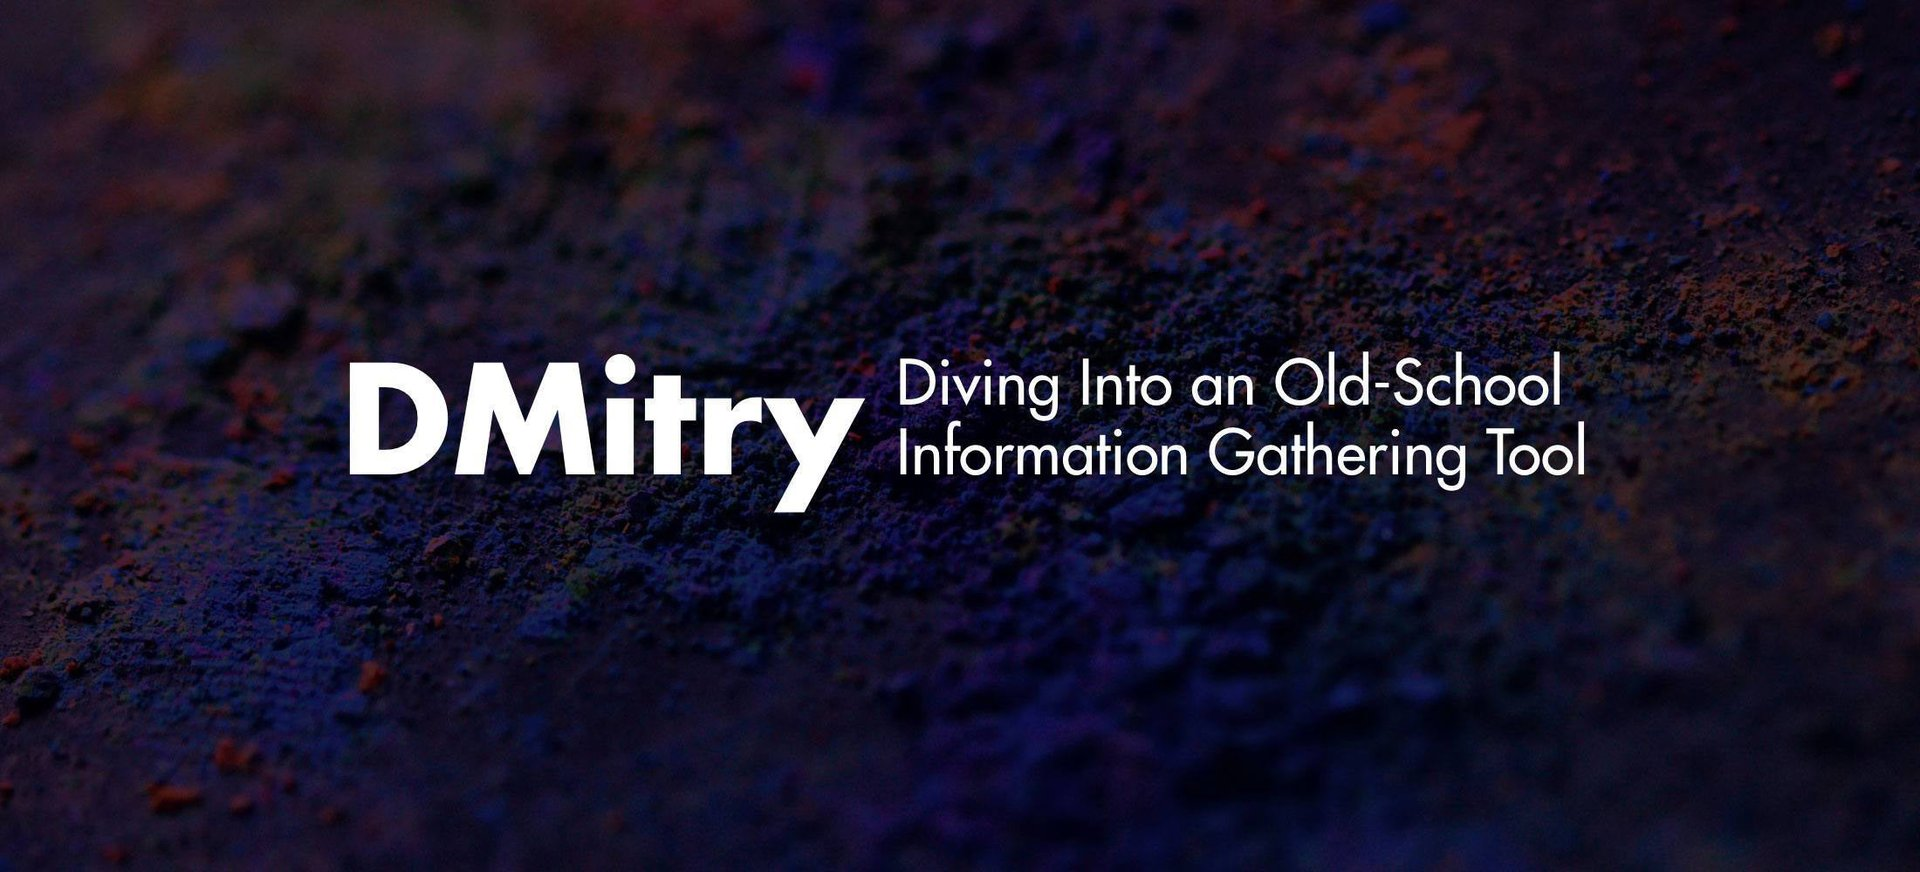 DMitry: Diving Into an Old-School Information Gathering Tool.